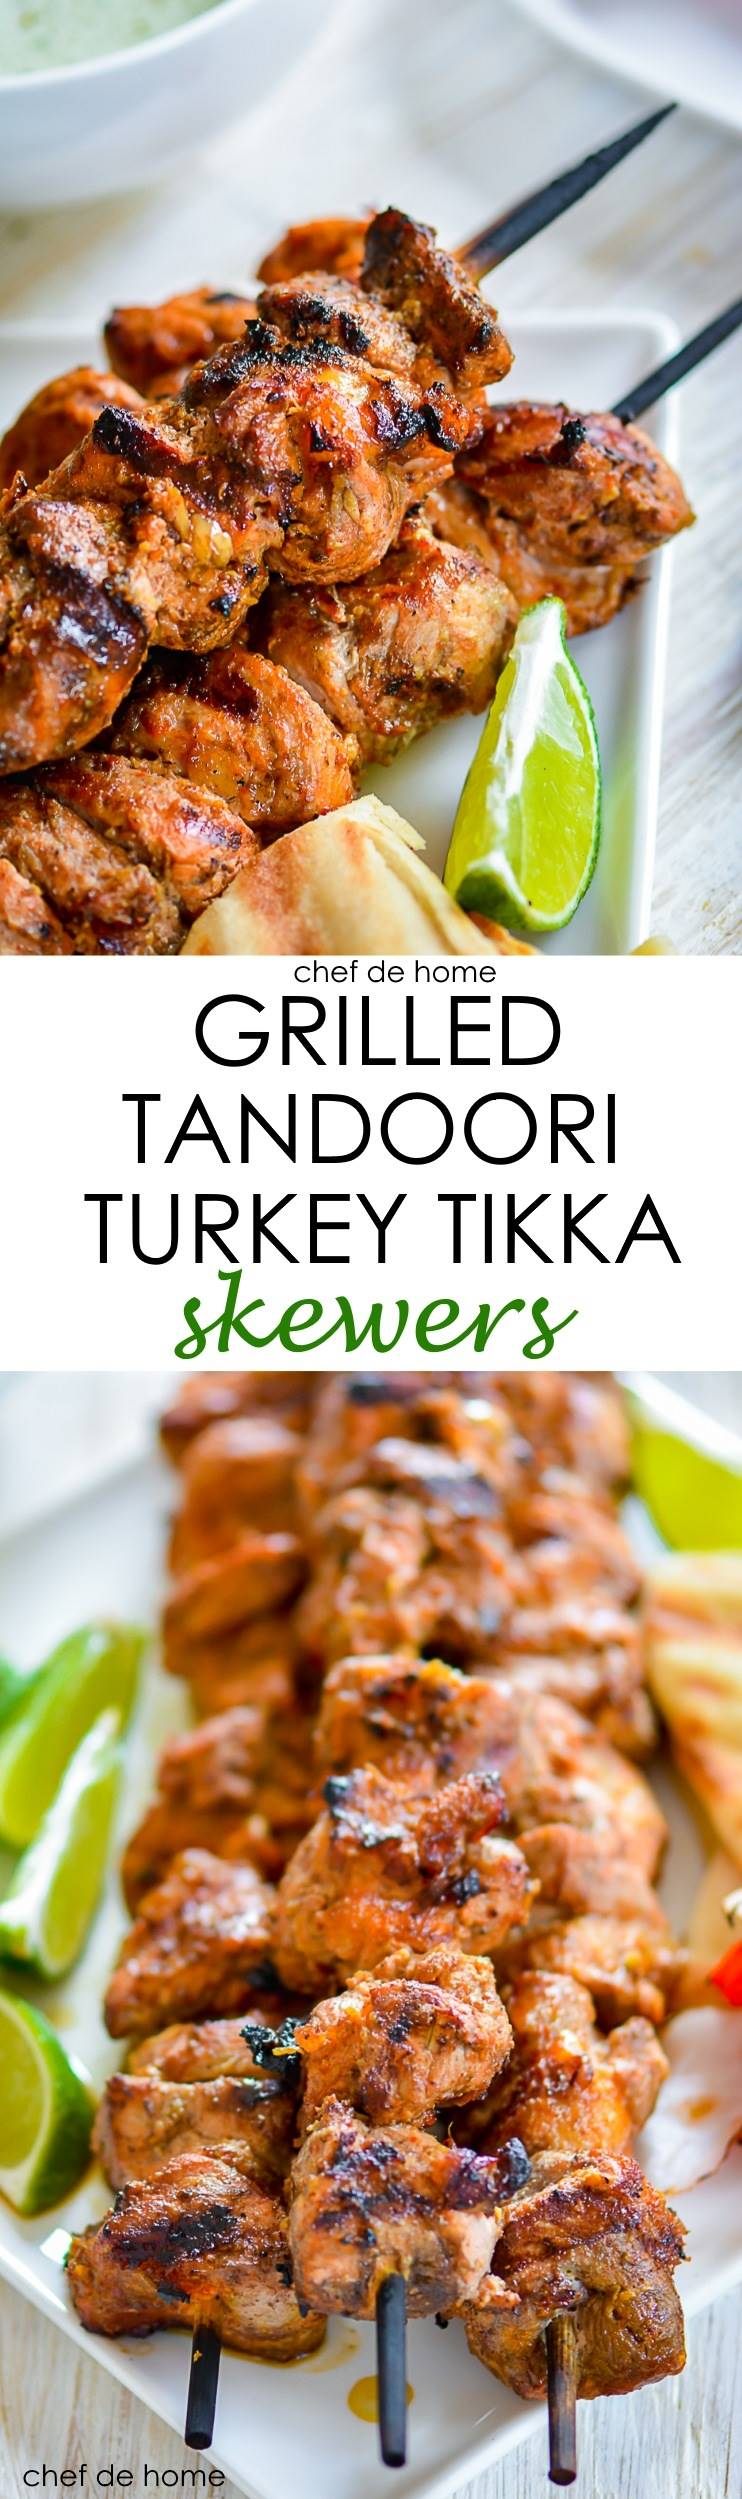 Grilled tandoori turkey breast with indian tikka masala flavors | chefdehome.com